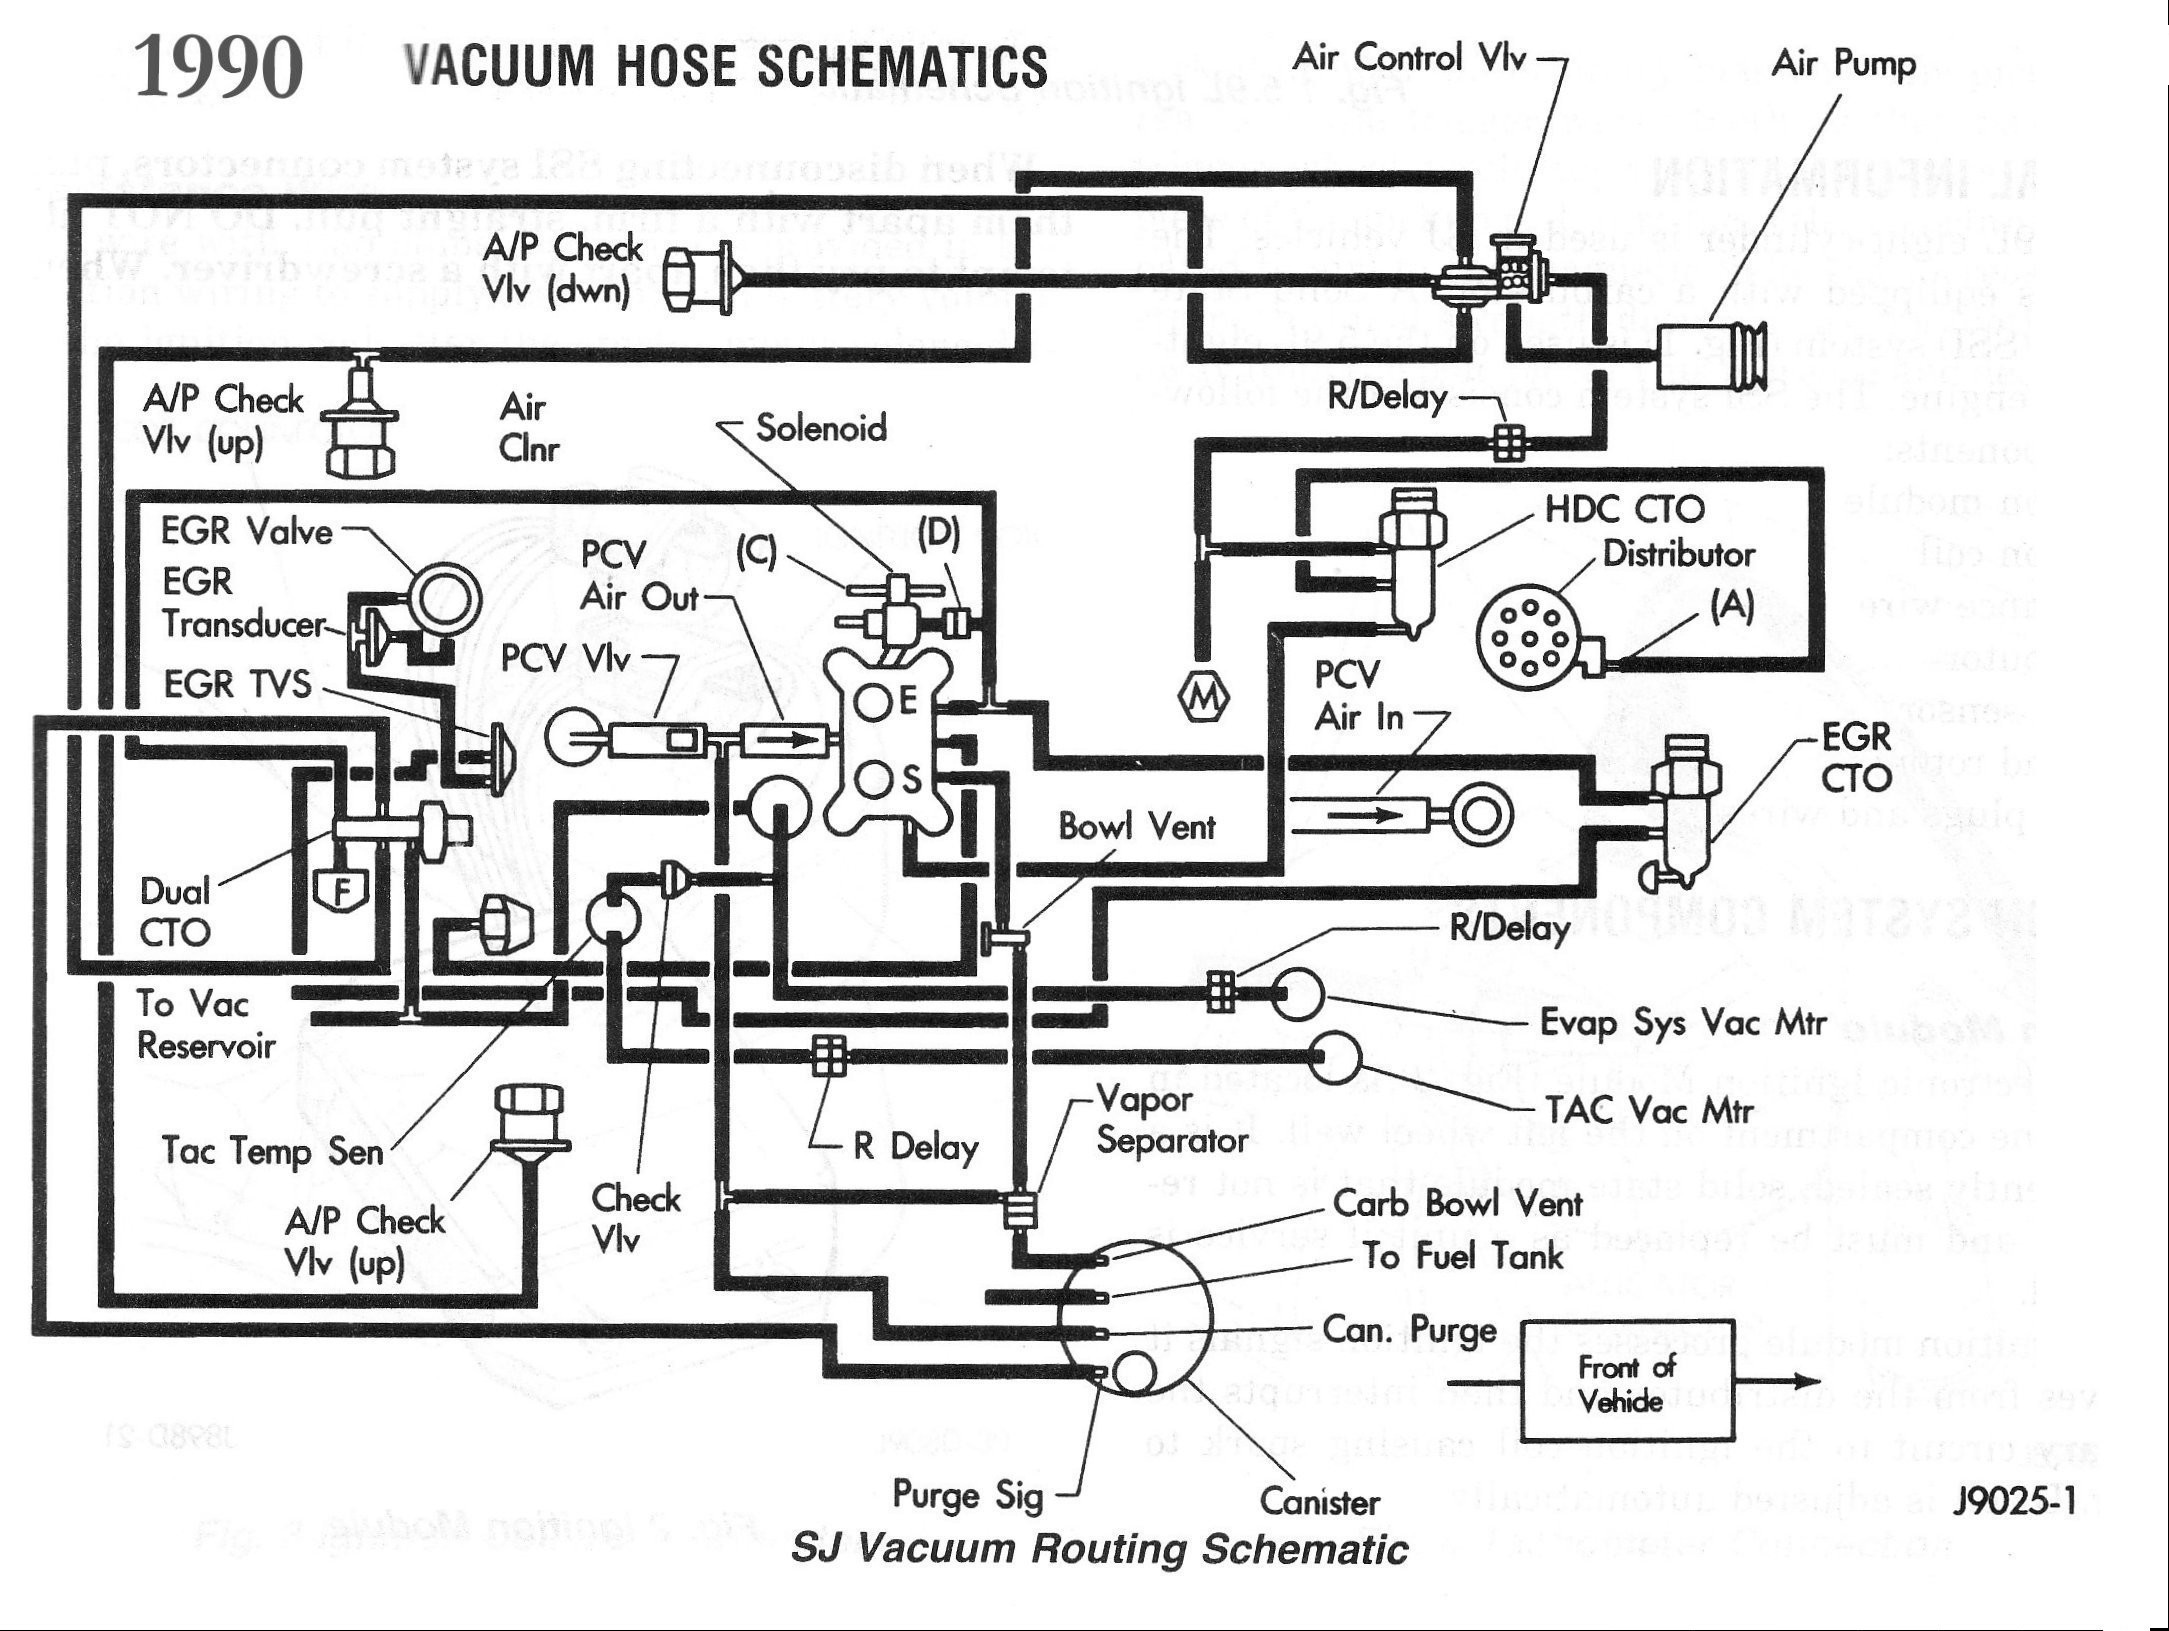 Jeep 4 0 Liter Engine Diagram Jeep Cherokee Vacuum Line Diagram Likewise 1987 Jeep Cherokee Wiring Of Jeep 4 0 Liter Engine Diagram